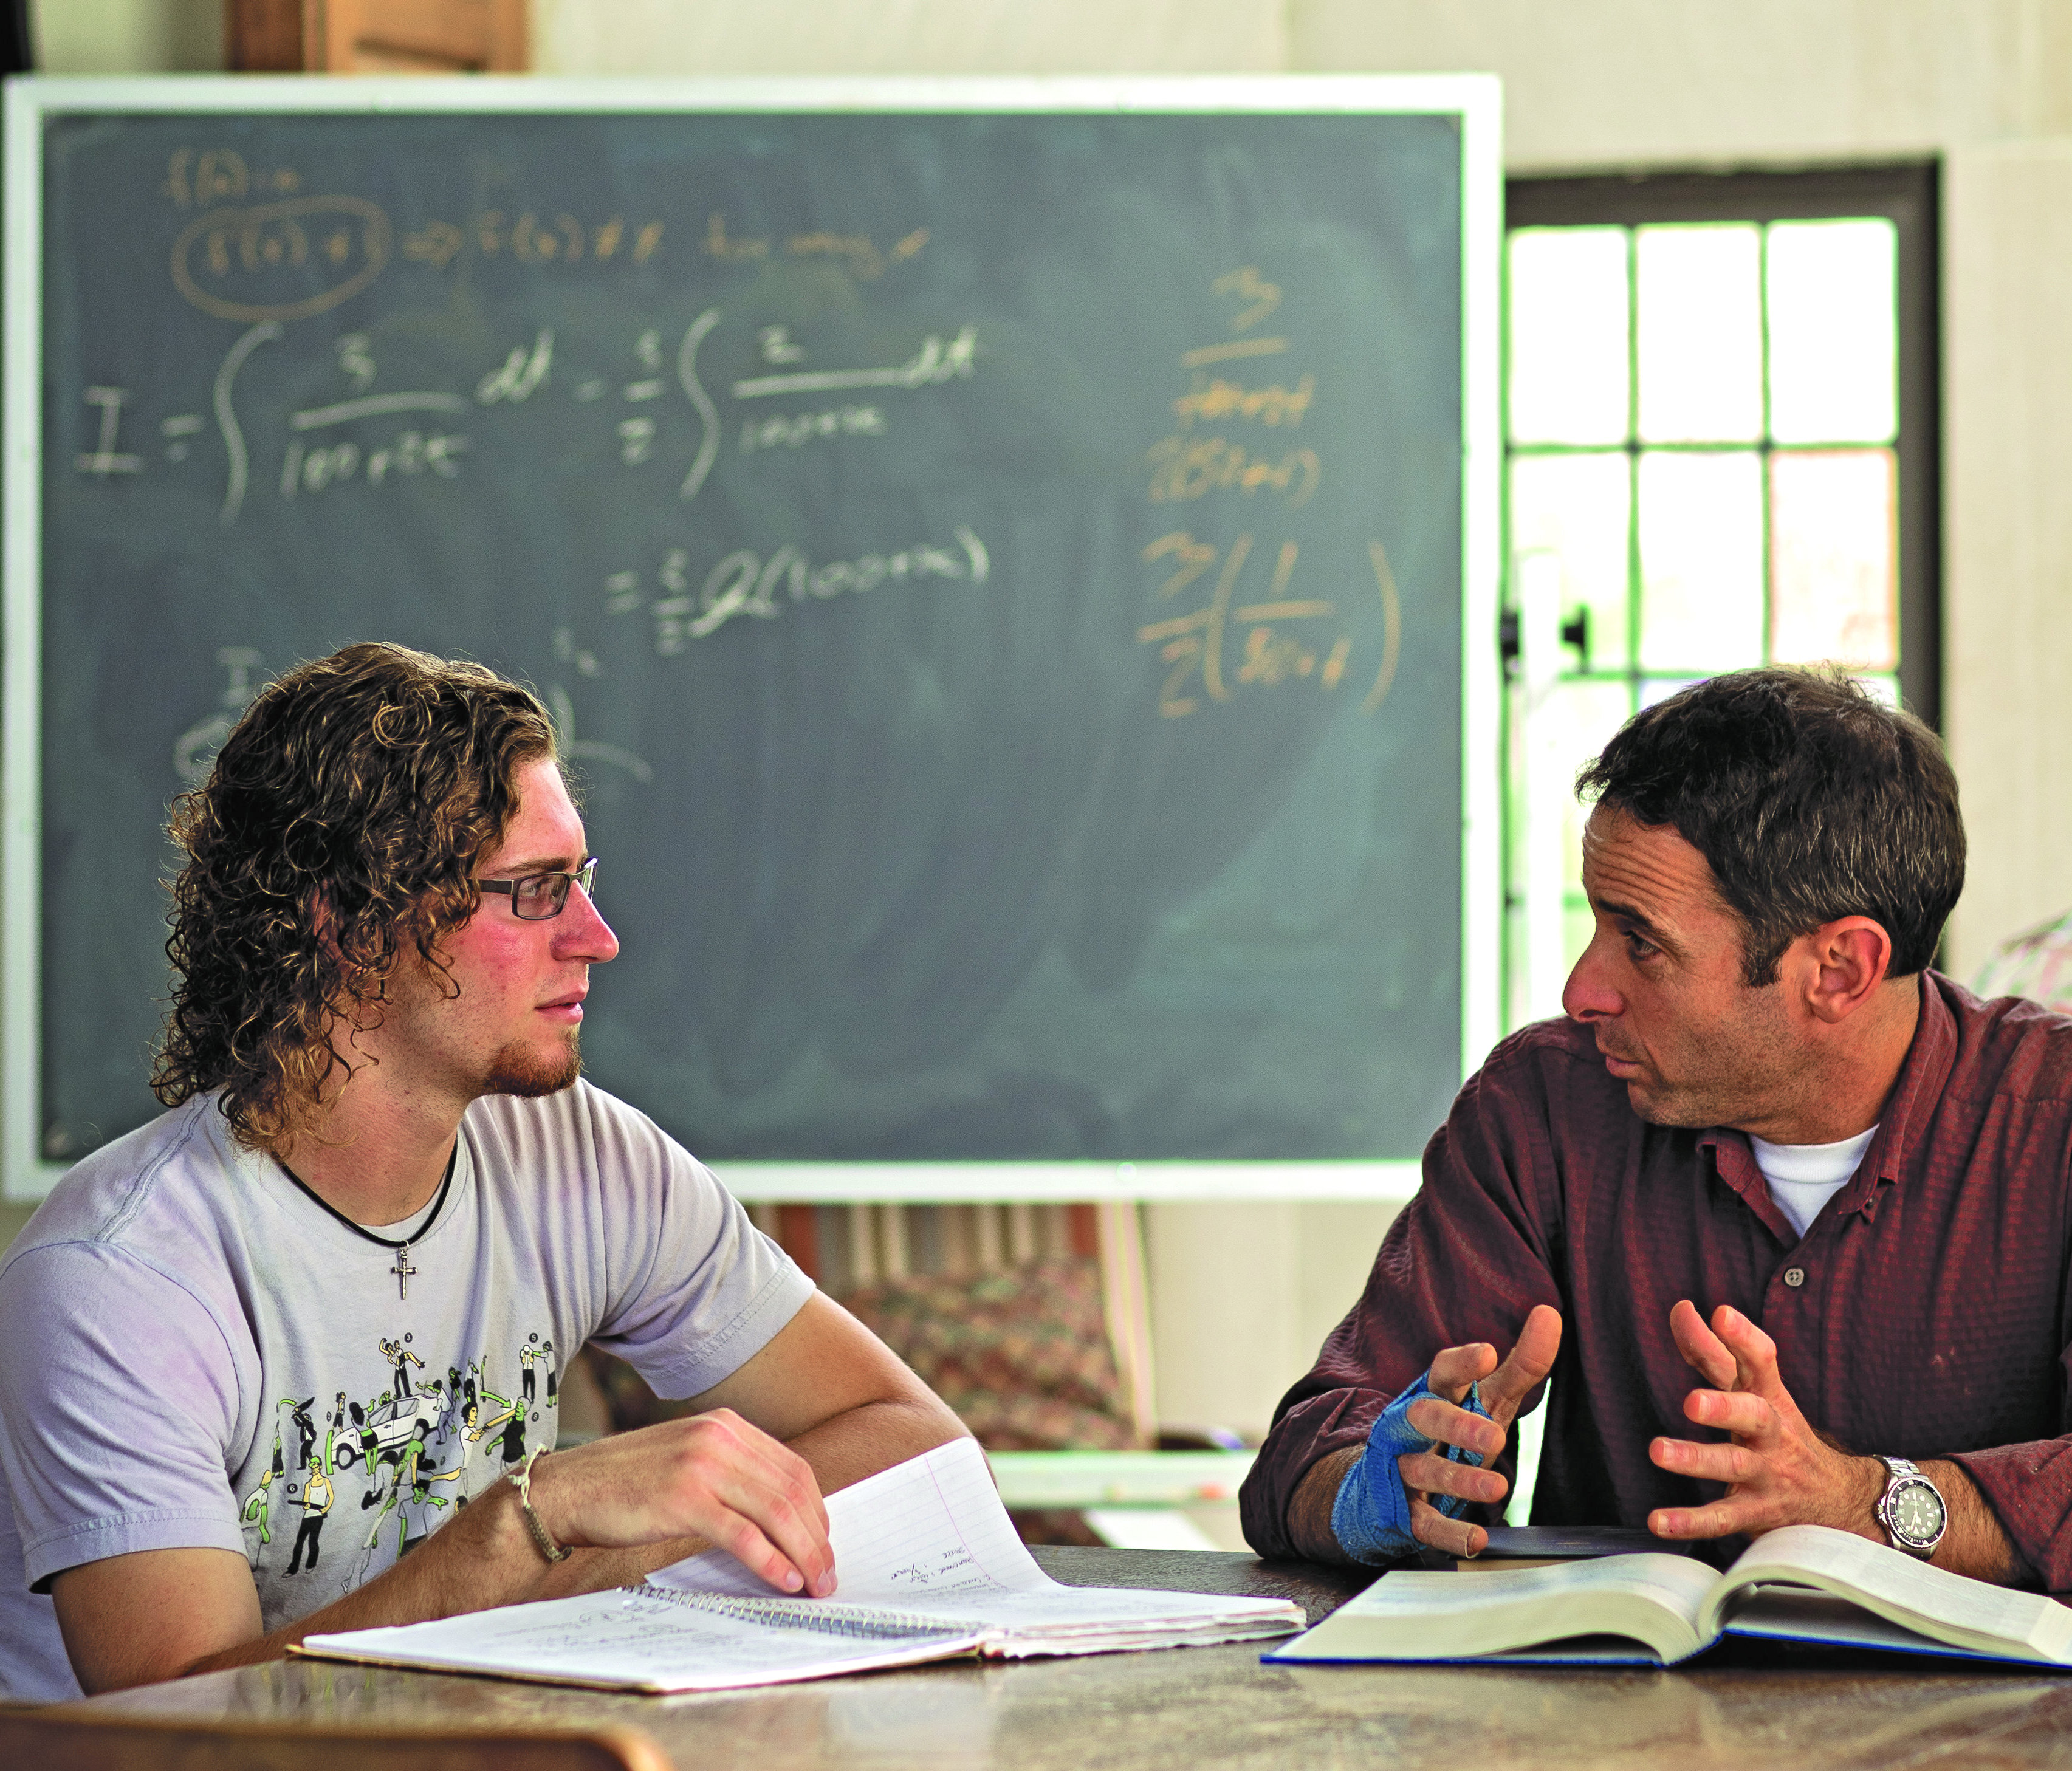 a student and professor talking in front of a chalkboard